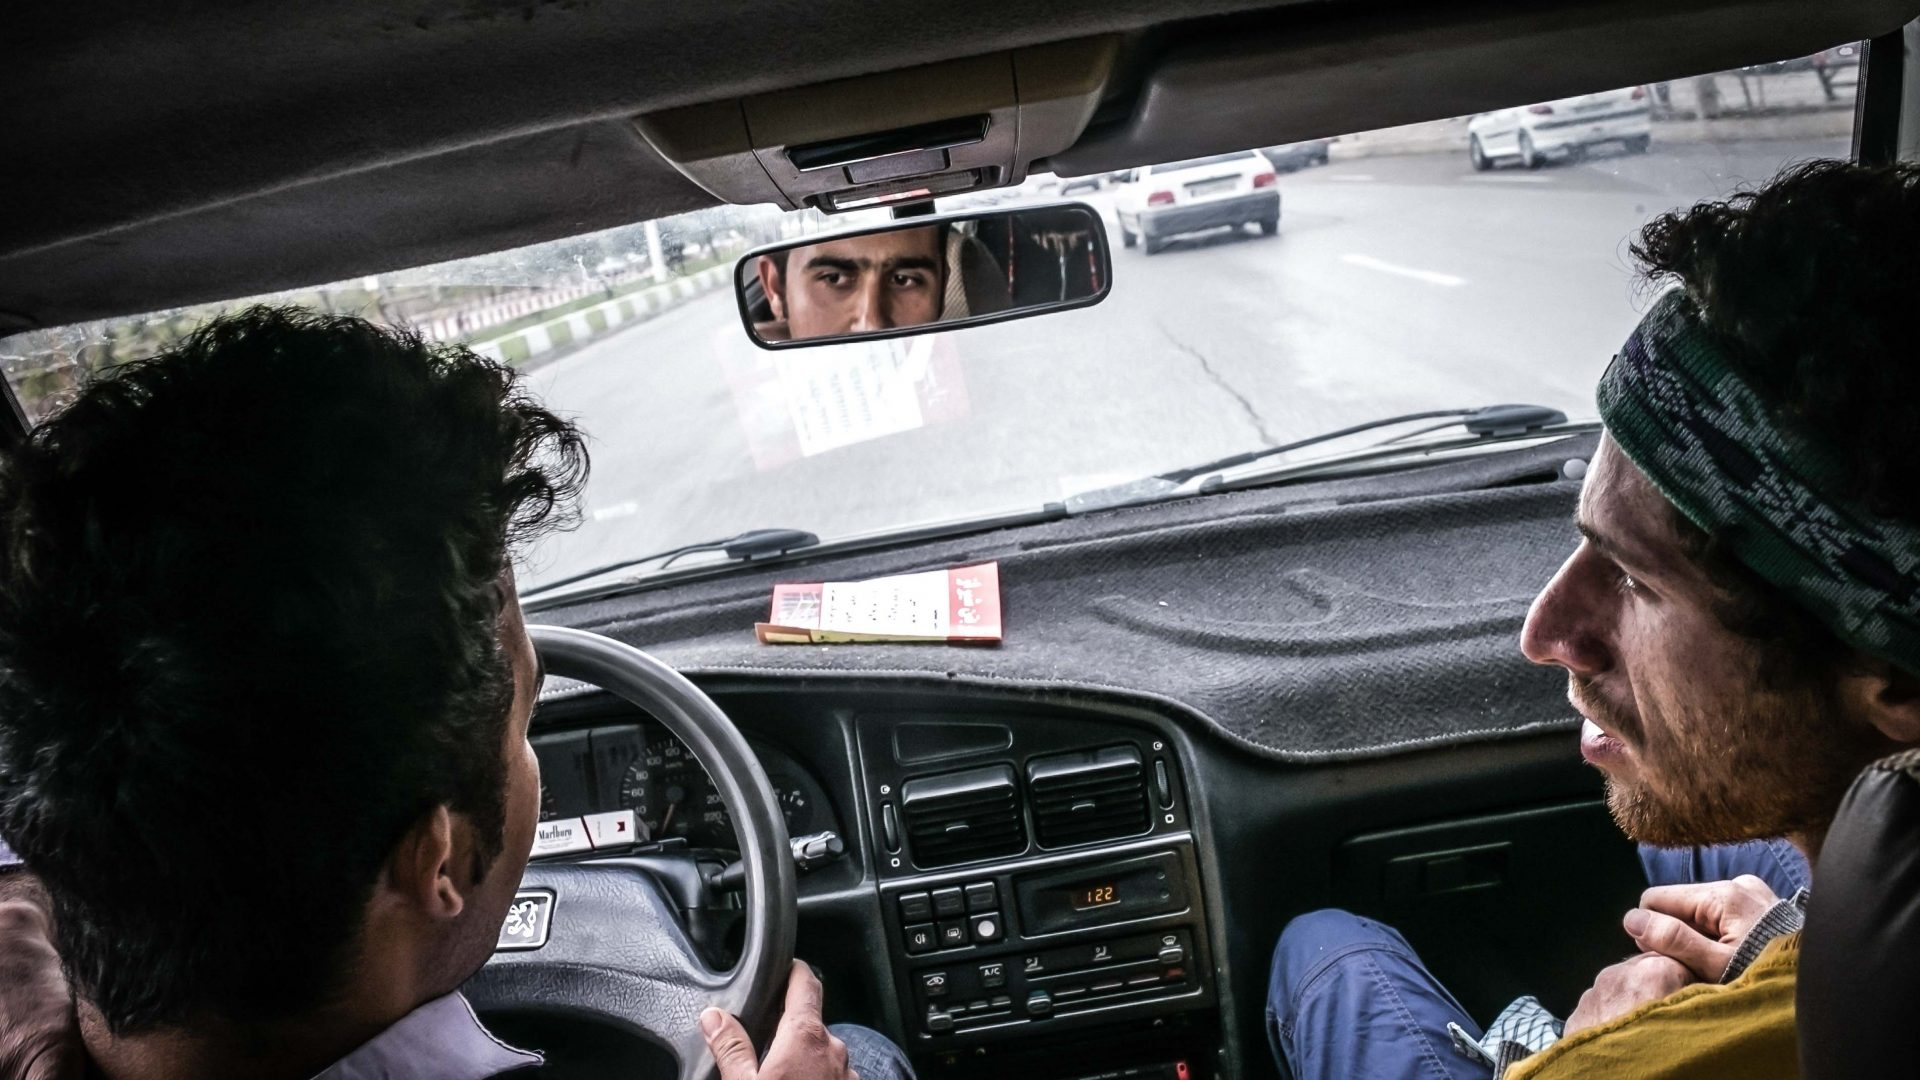 Ershad talking with Eshad, a young man who stopped to pick us up and drove us to Ghalat.